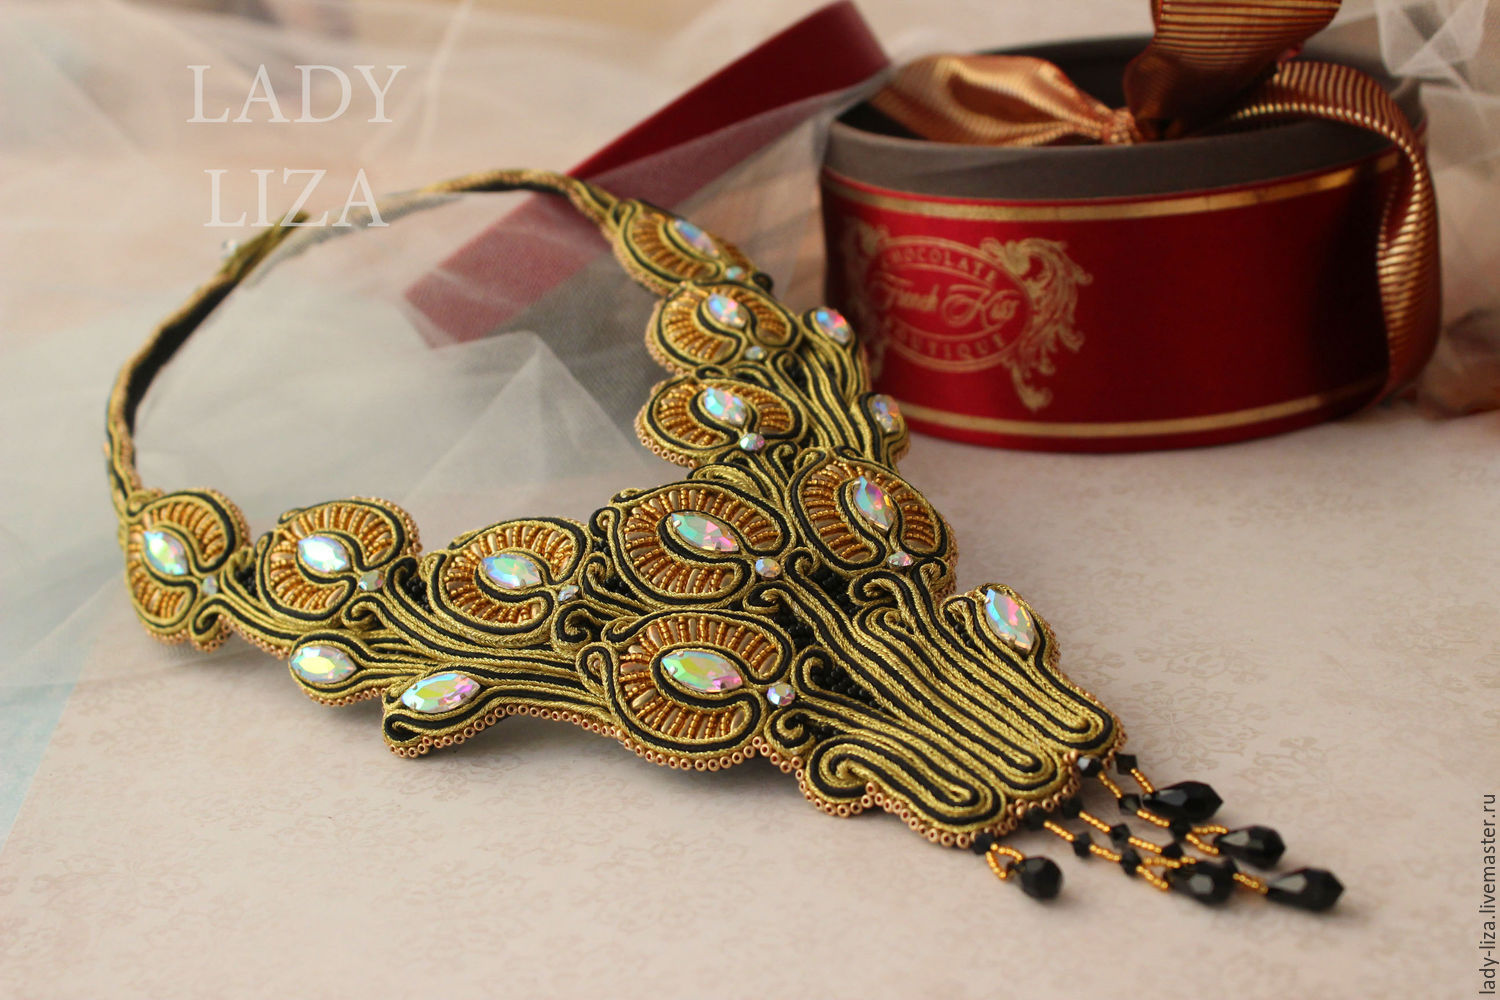 handmade purchase on soutache masters to online liza lady jewelry item needlework necklace jewellery shop fair modern